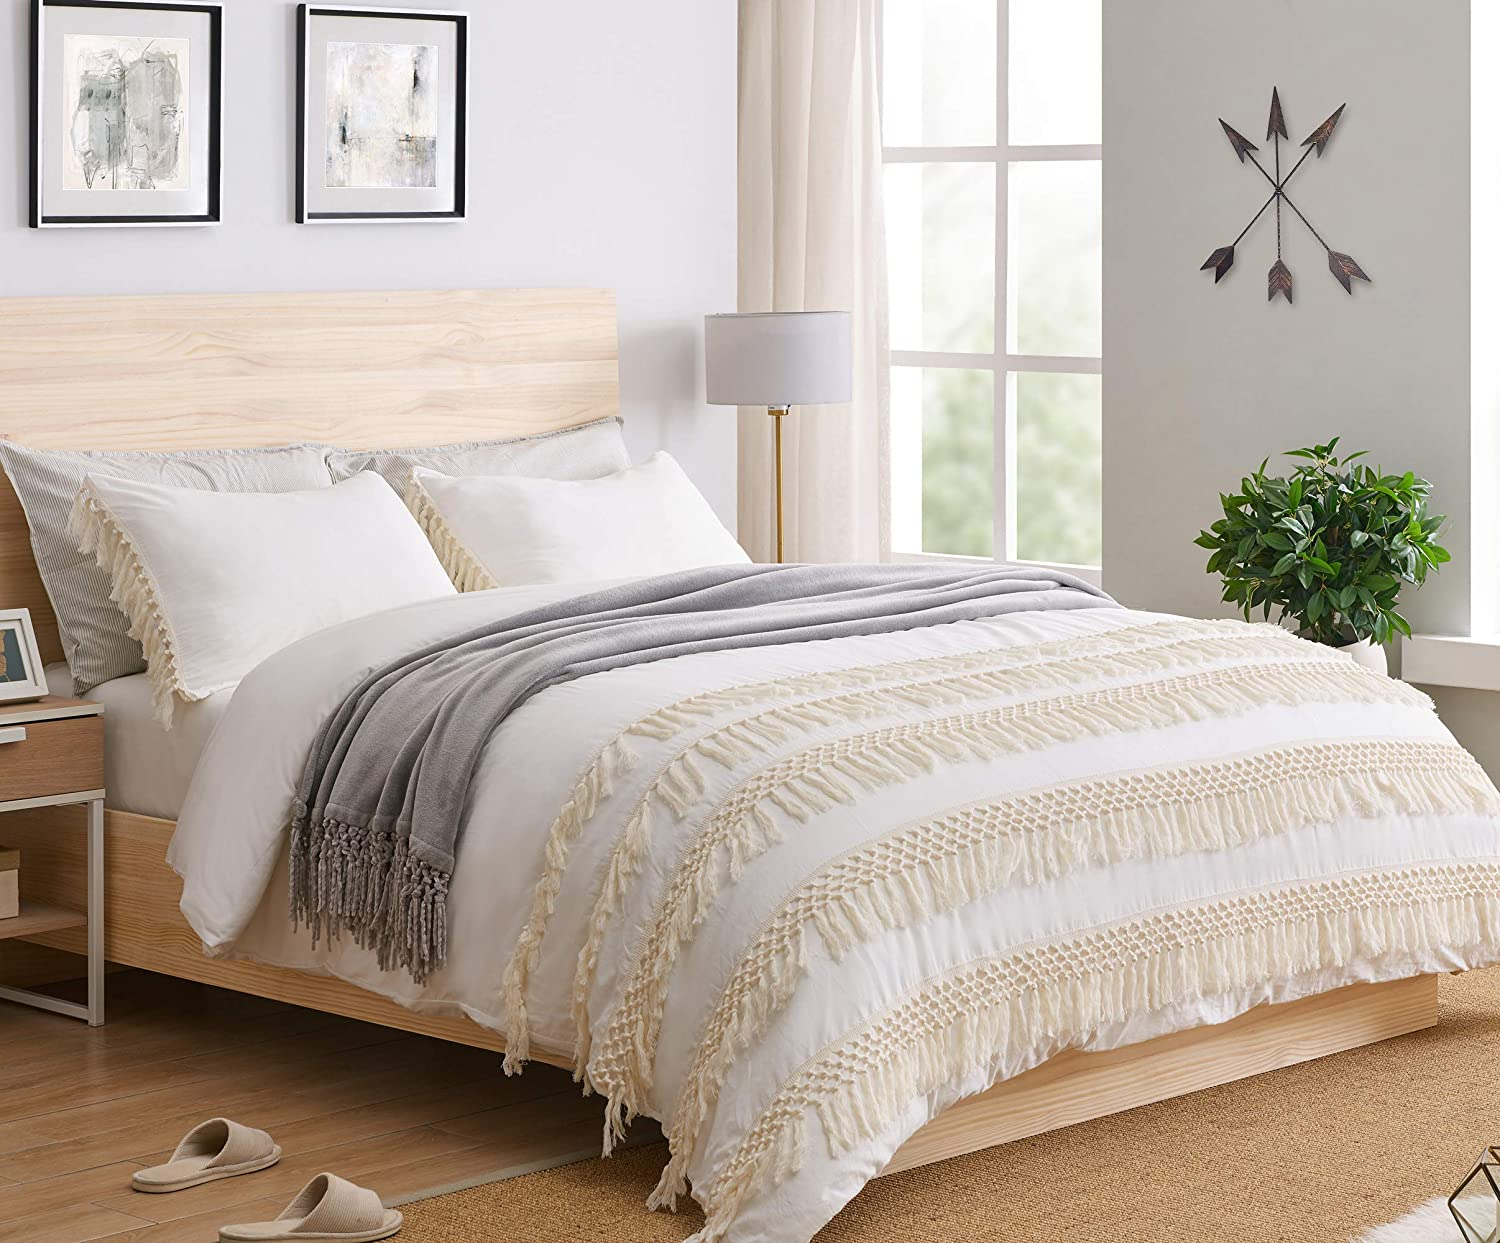 KB & Me Minimalist Boho Chic Solid Ivory Cream Macrame Fringe Knotted Tassel Cotton Duvet Comforter Cover and Sham 3 pc. Off White Full/Queen Size Bedding Set Luxury College